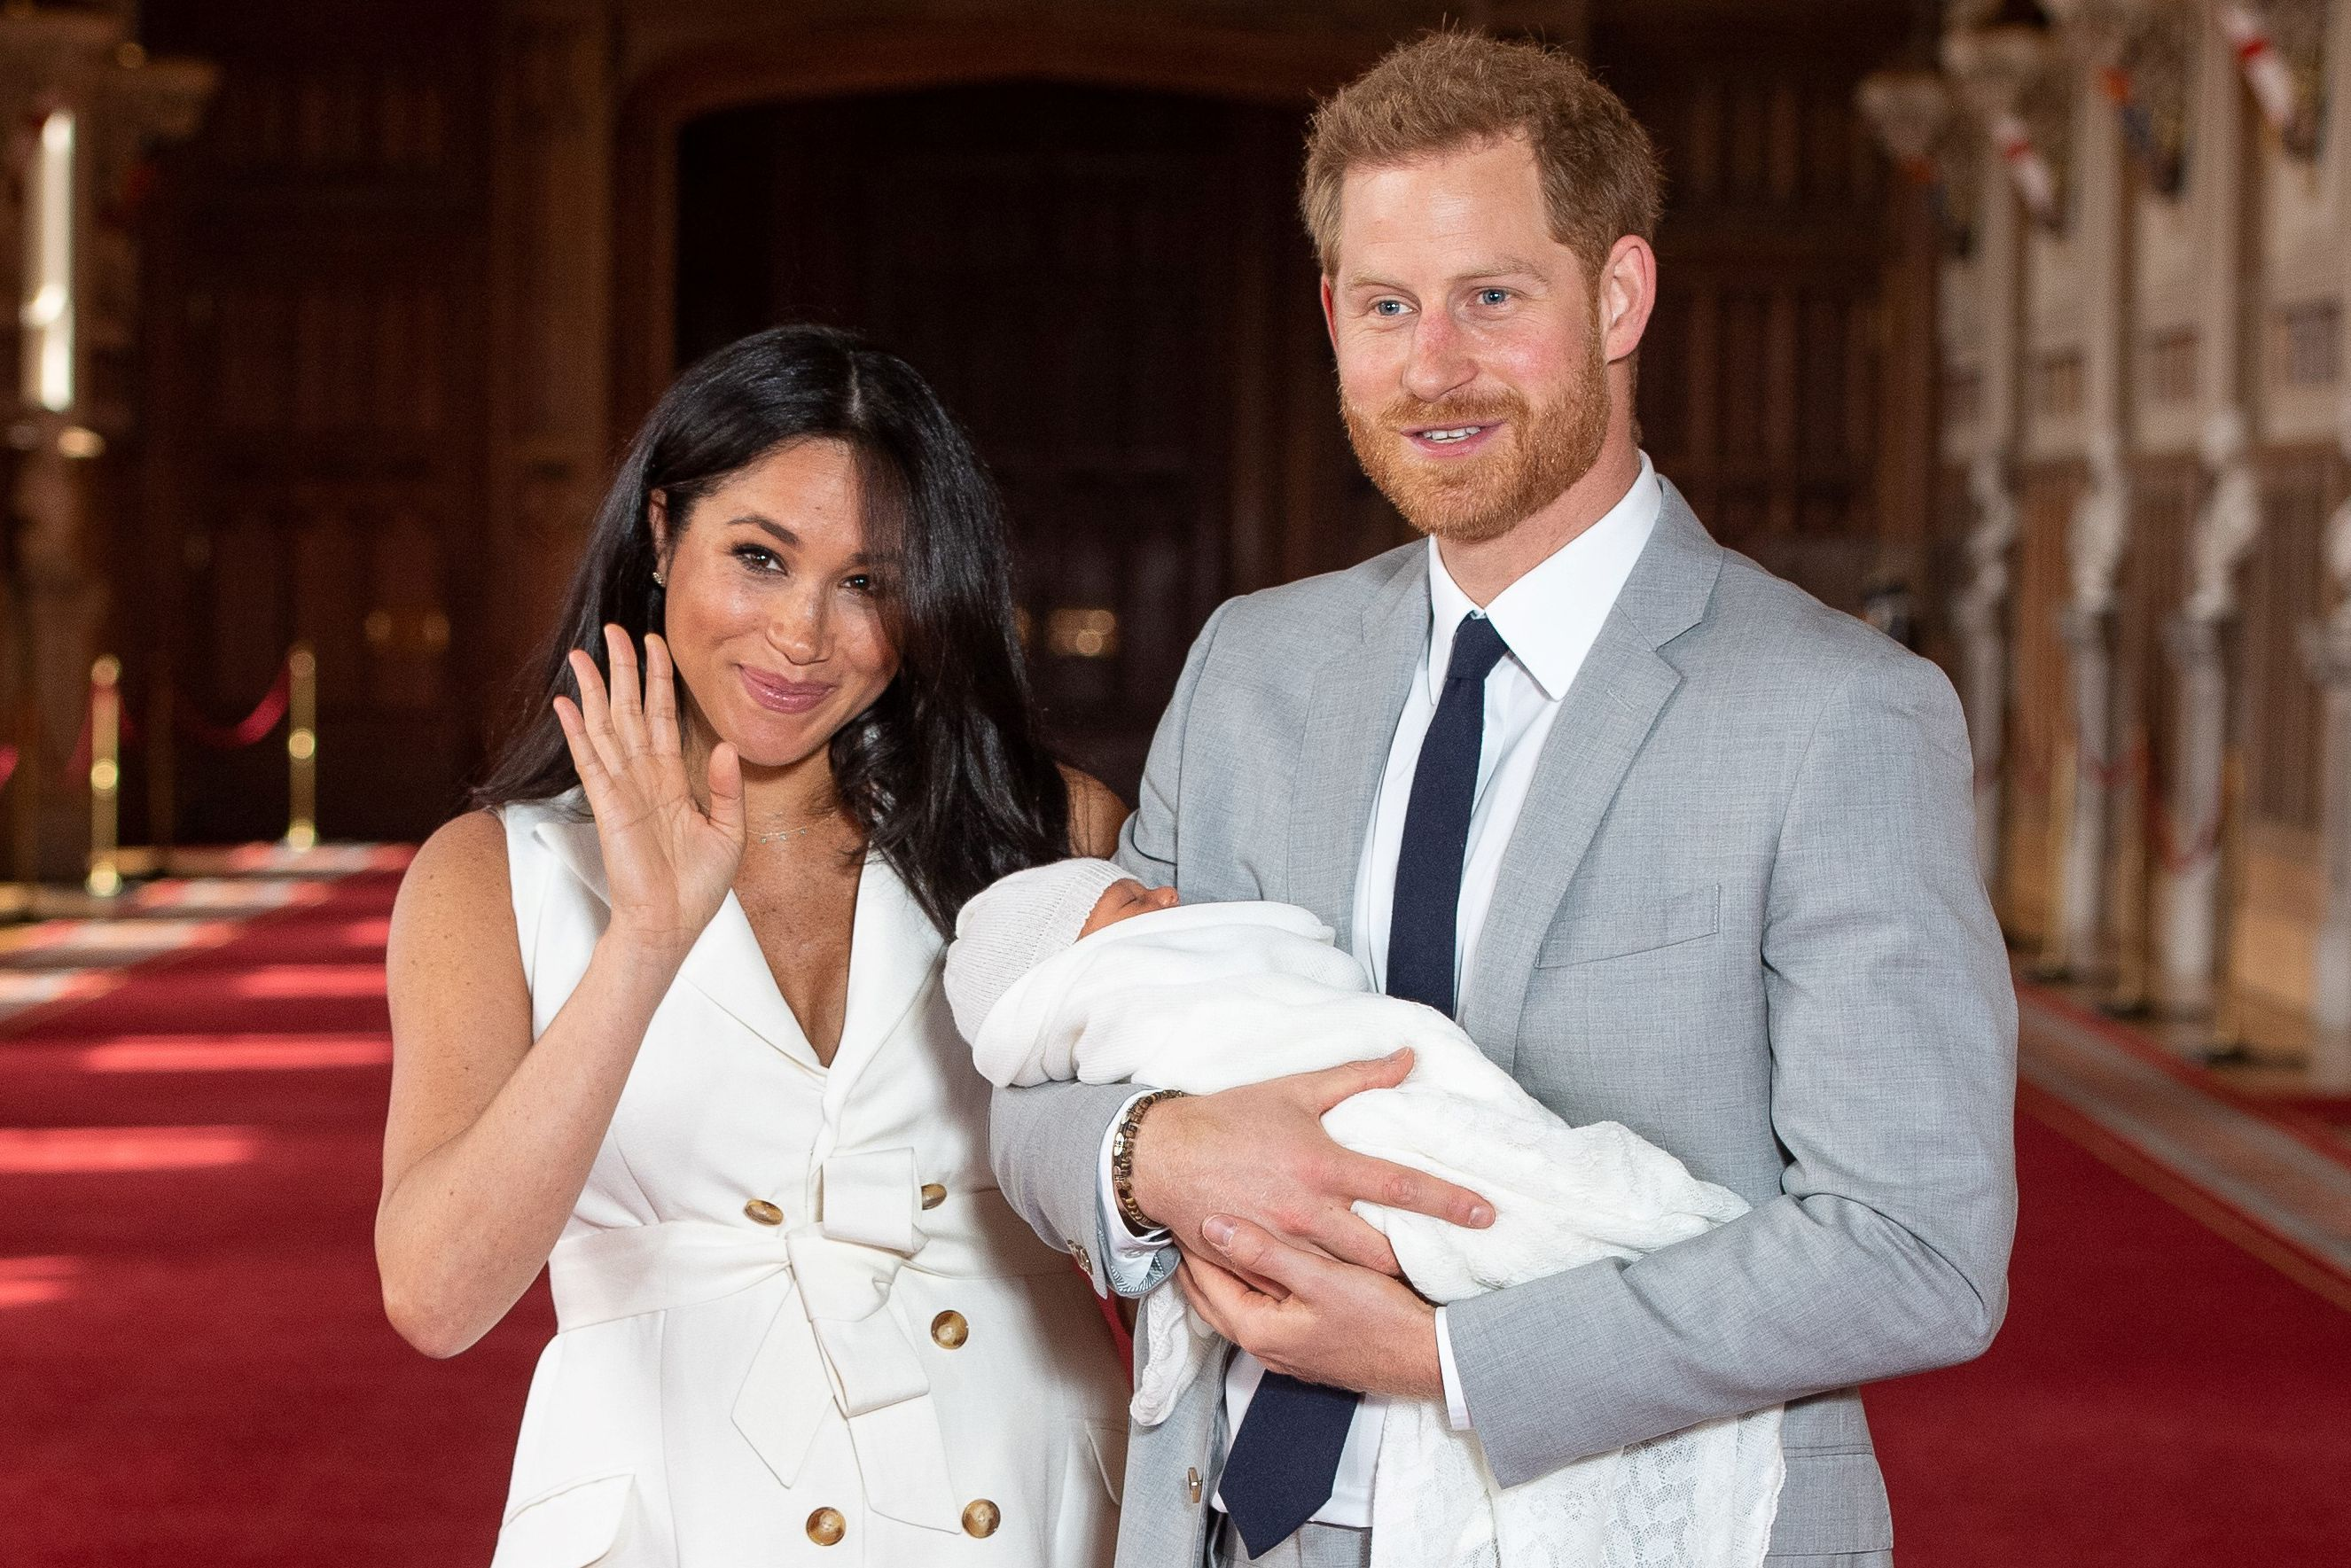 Baby of Prince Harry and Meghan Markle christened on Saturday: Who are his Godparents?